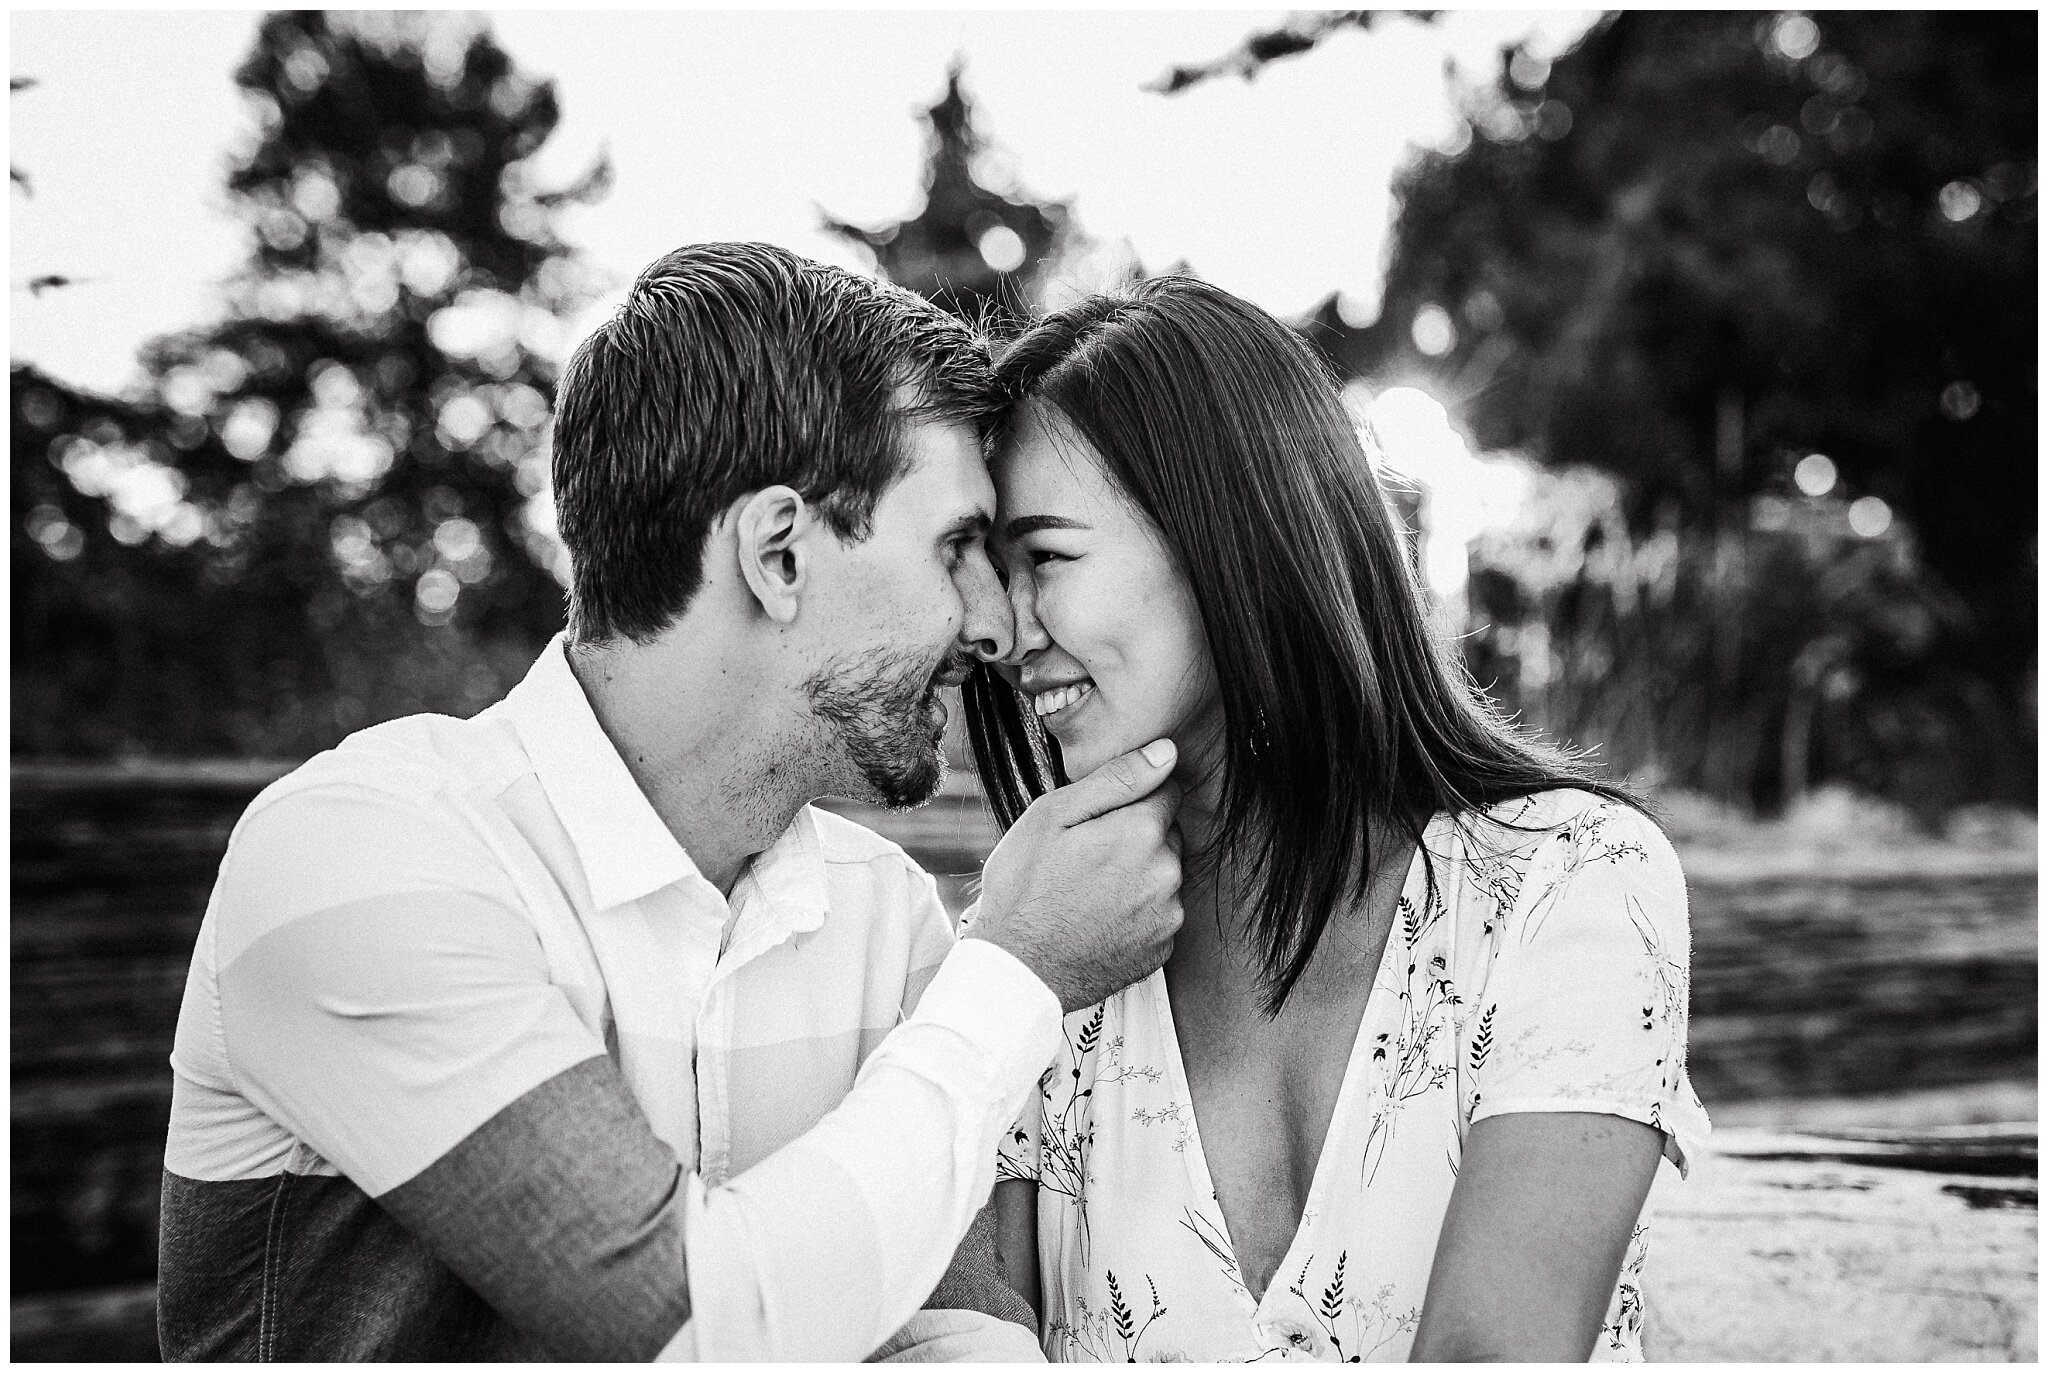 Vancouver Spanish Banks Engagement Photographer City Skyline Romantic Couples_0016.jpg